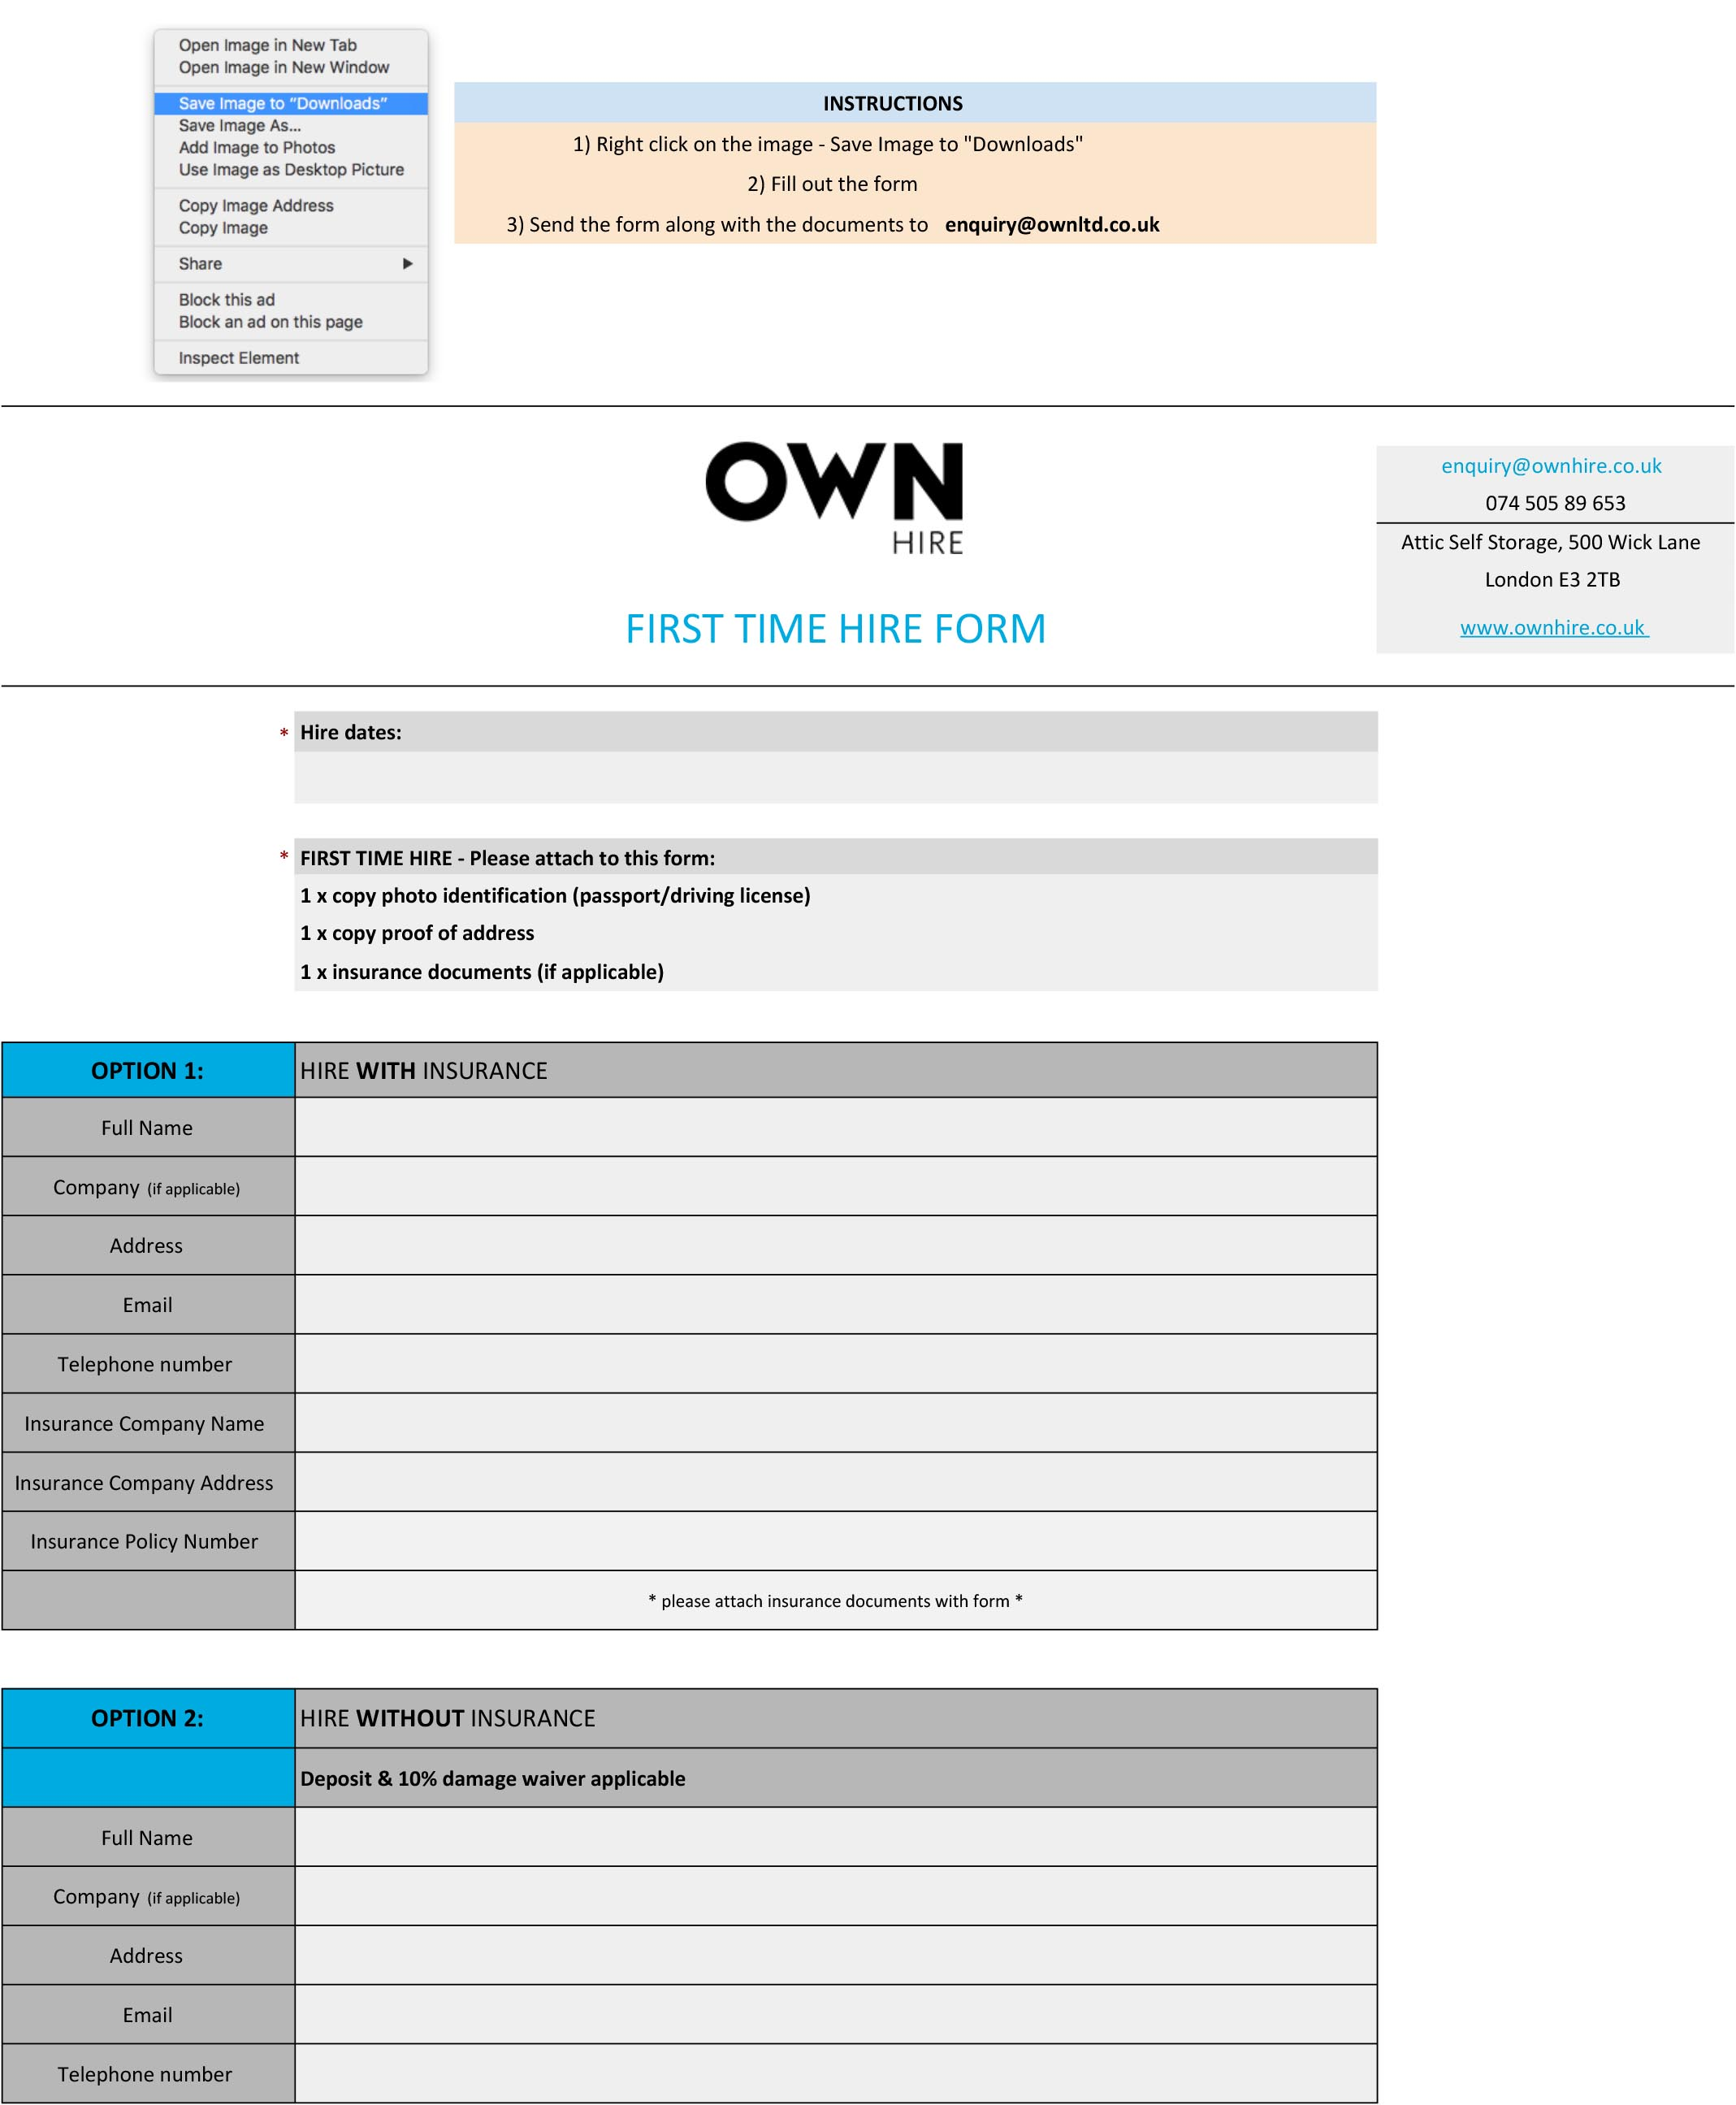 OWN HIRE FIRST TIME HIRE FORM